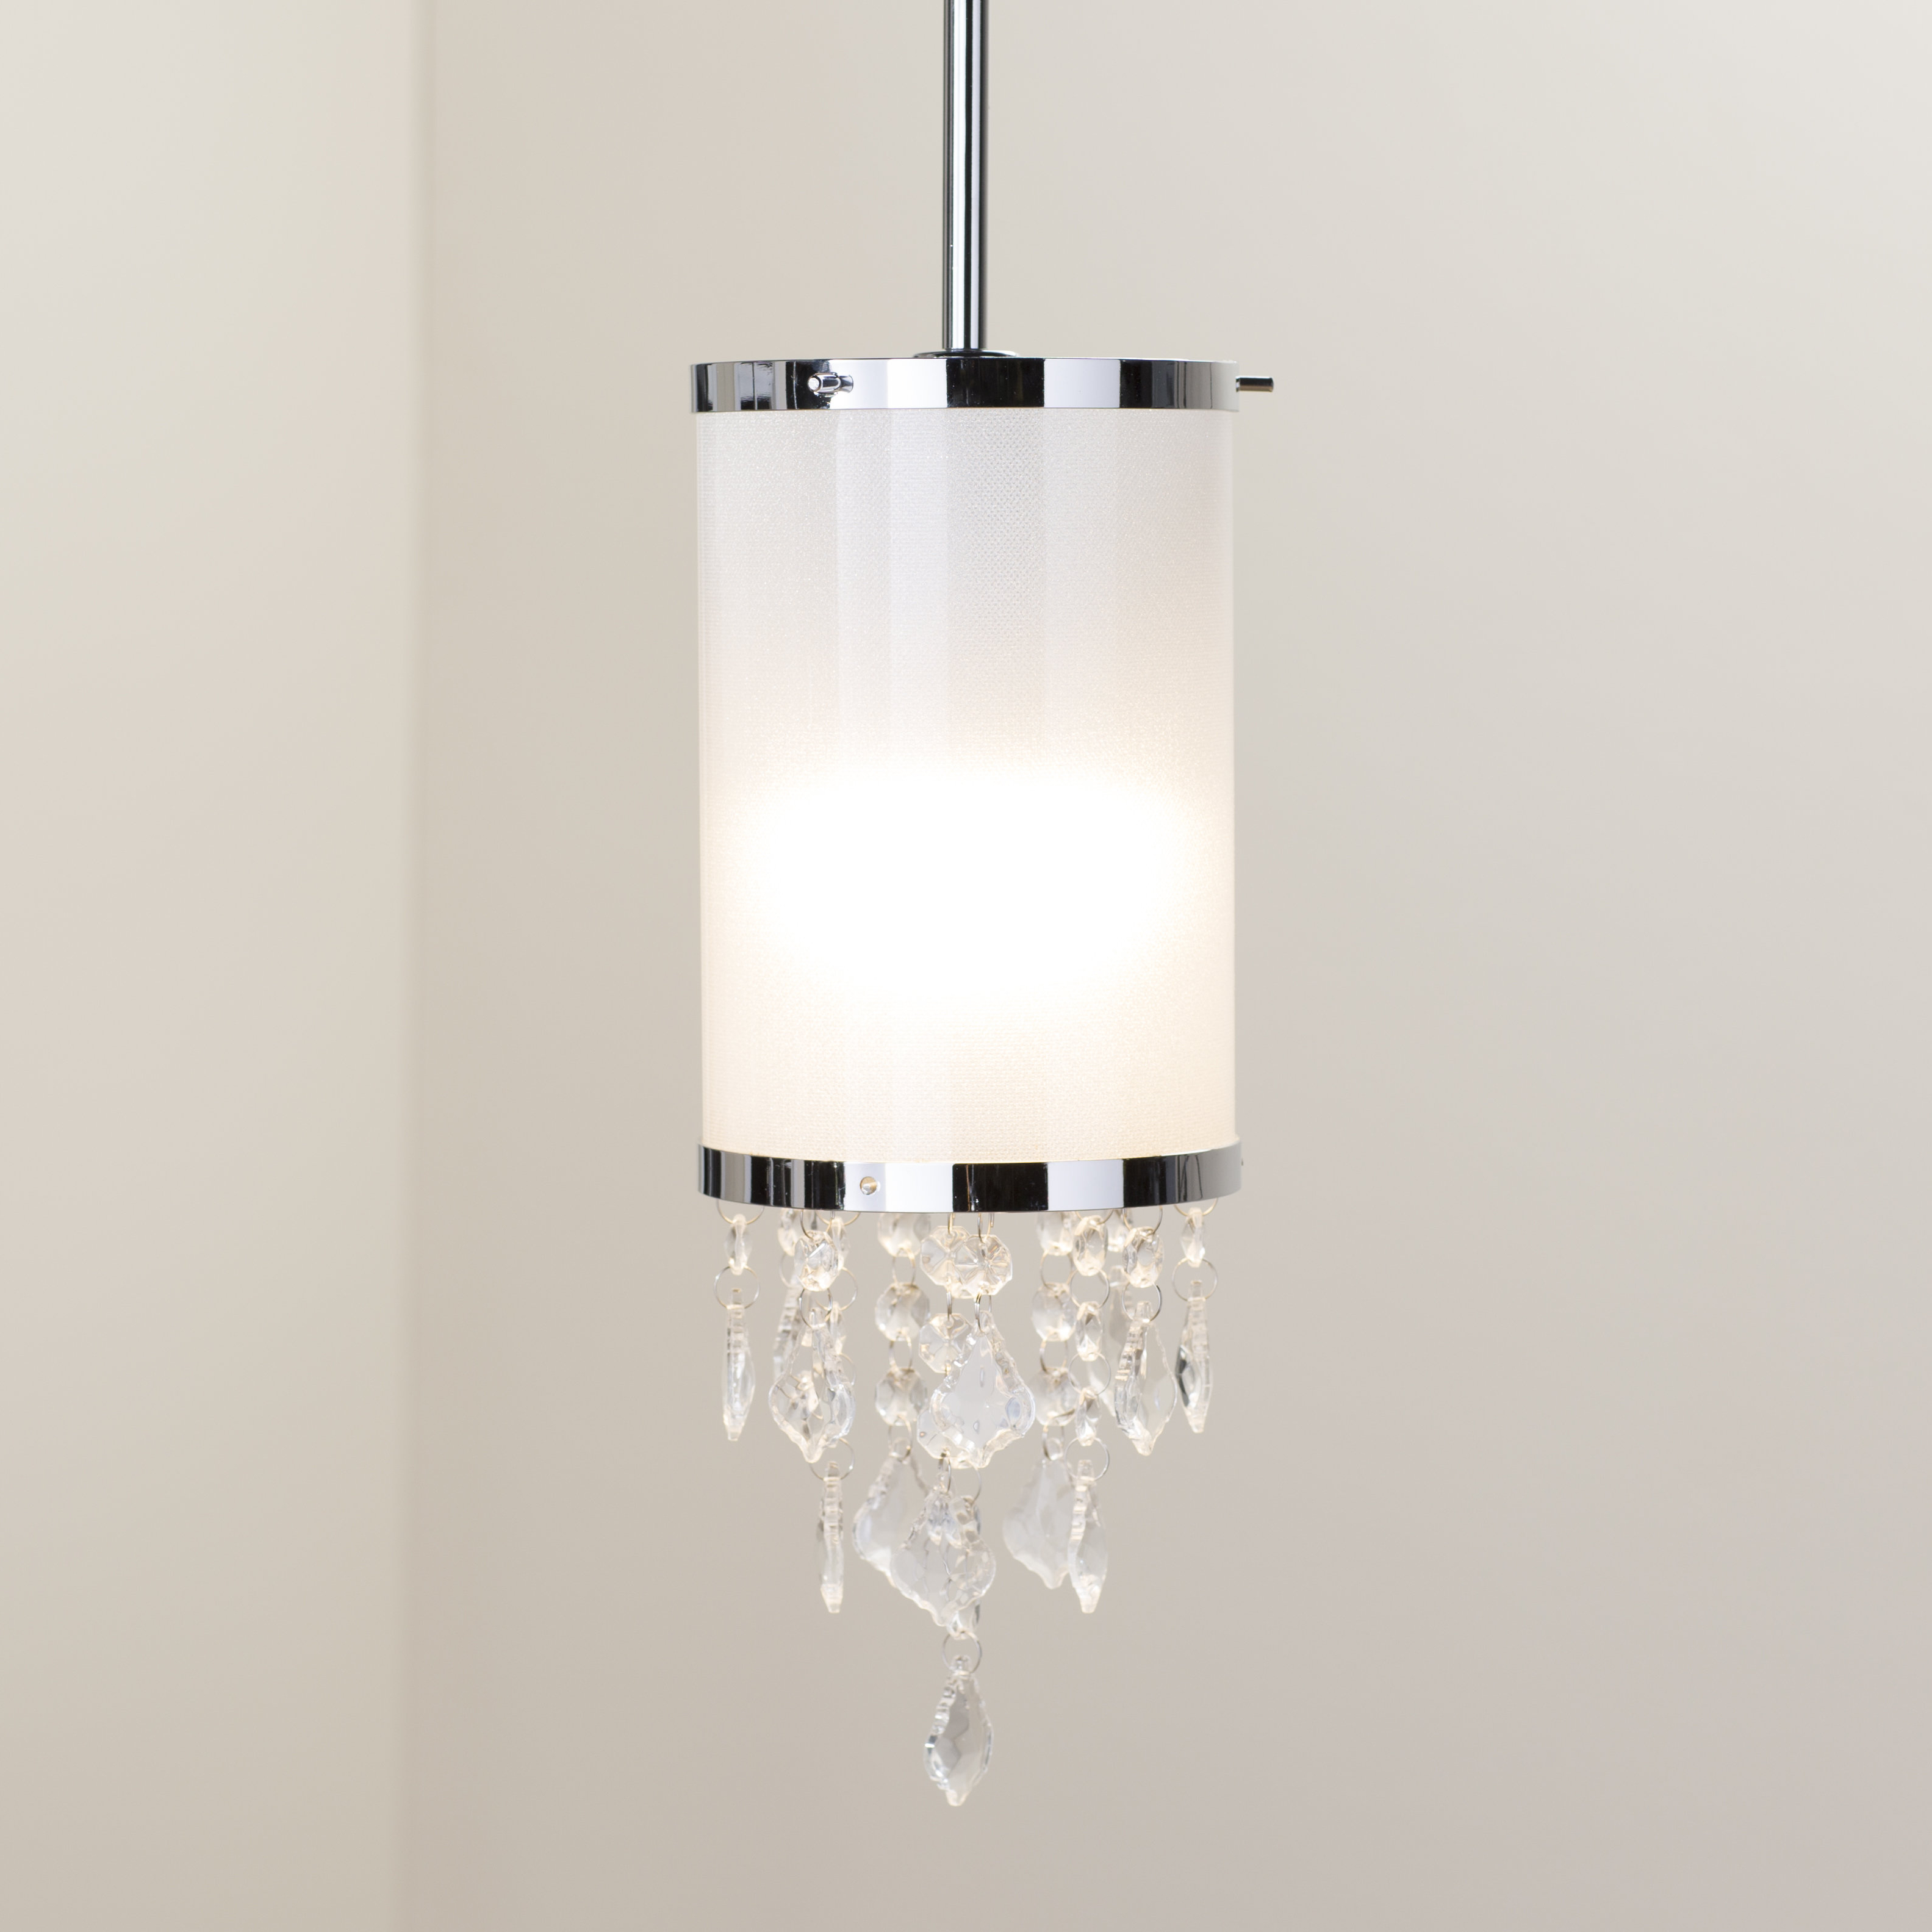 """Kraker 1 Light Single Cylinder Pendants Intended For Well Liked Crystal Mini (Less Than 10"""" Wide) Pendant Lighting You'll (View 9 of 25)"""